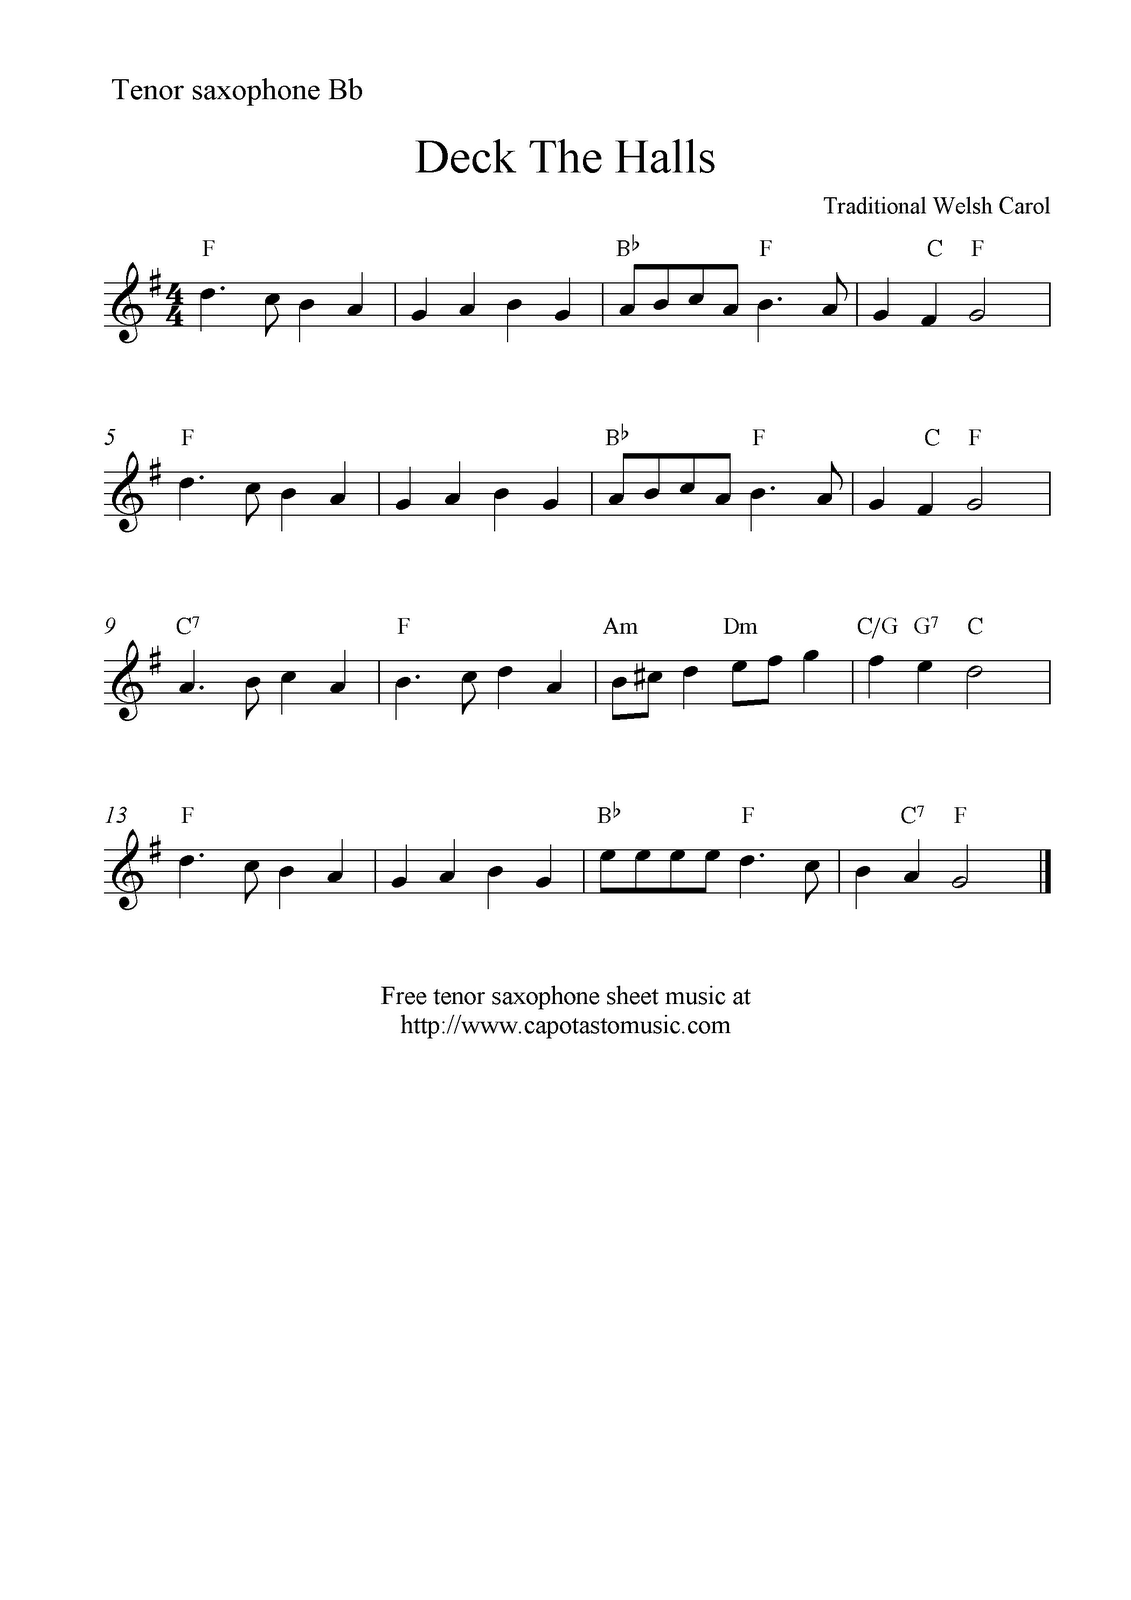 Deck the halls sheet music for alto saxophone